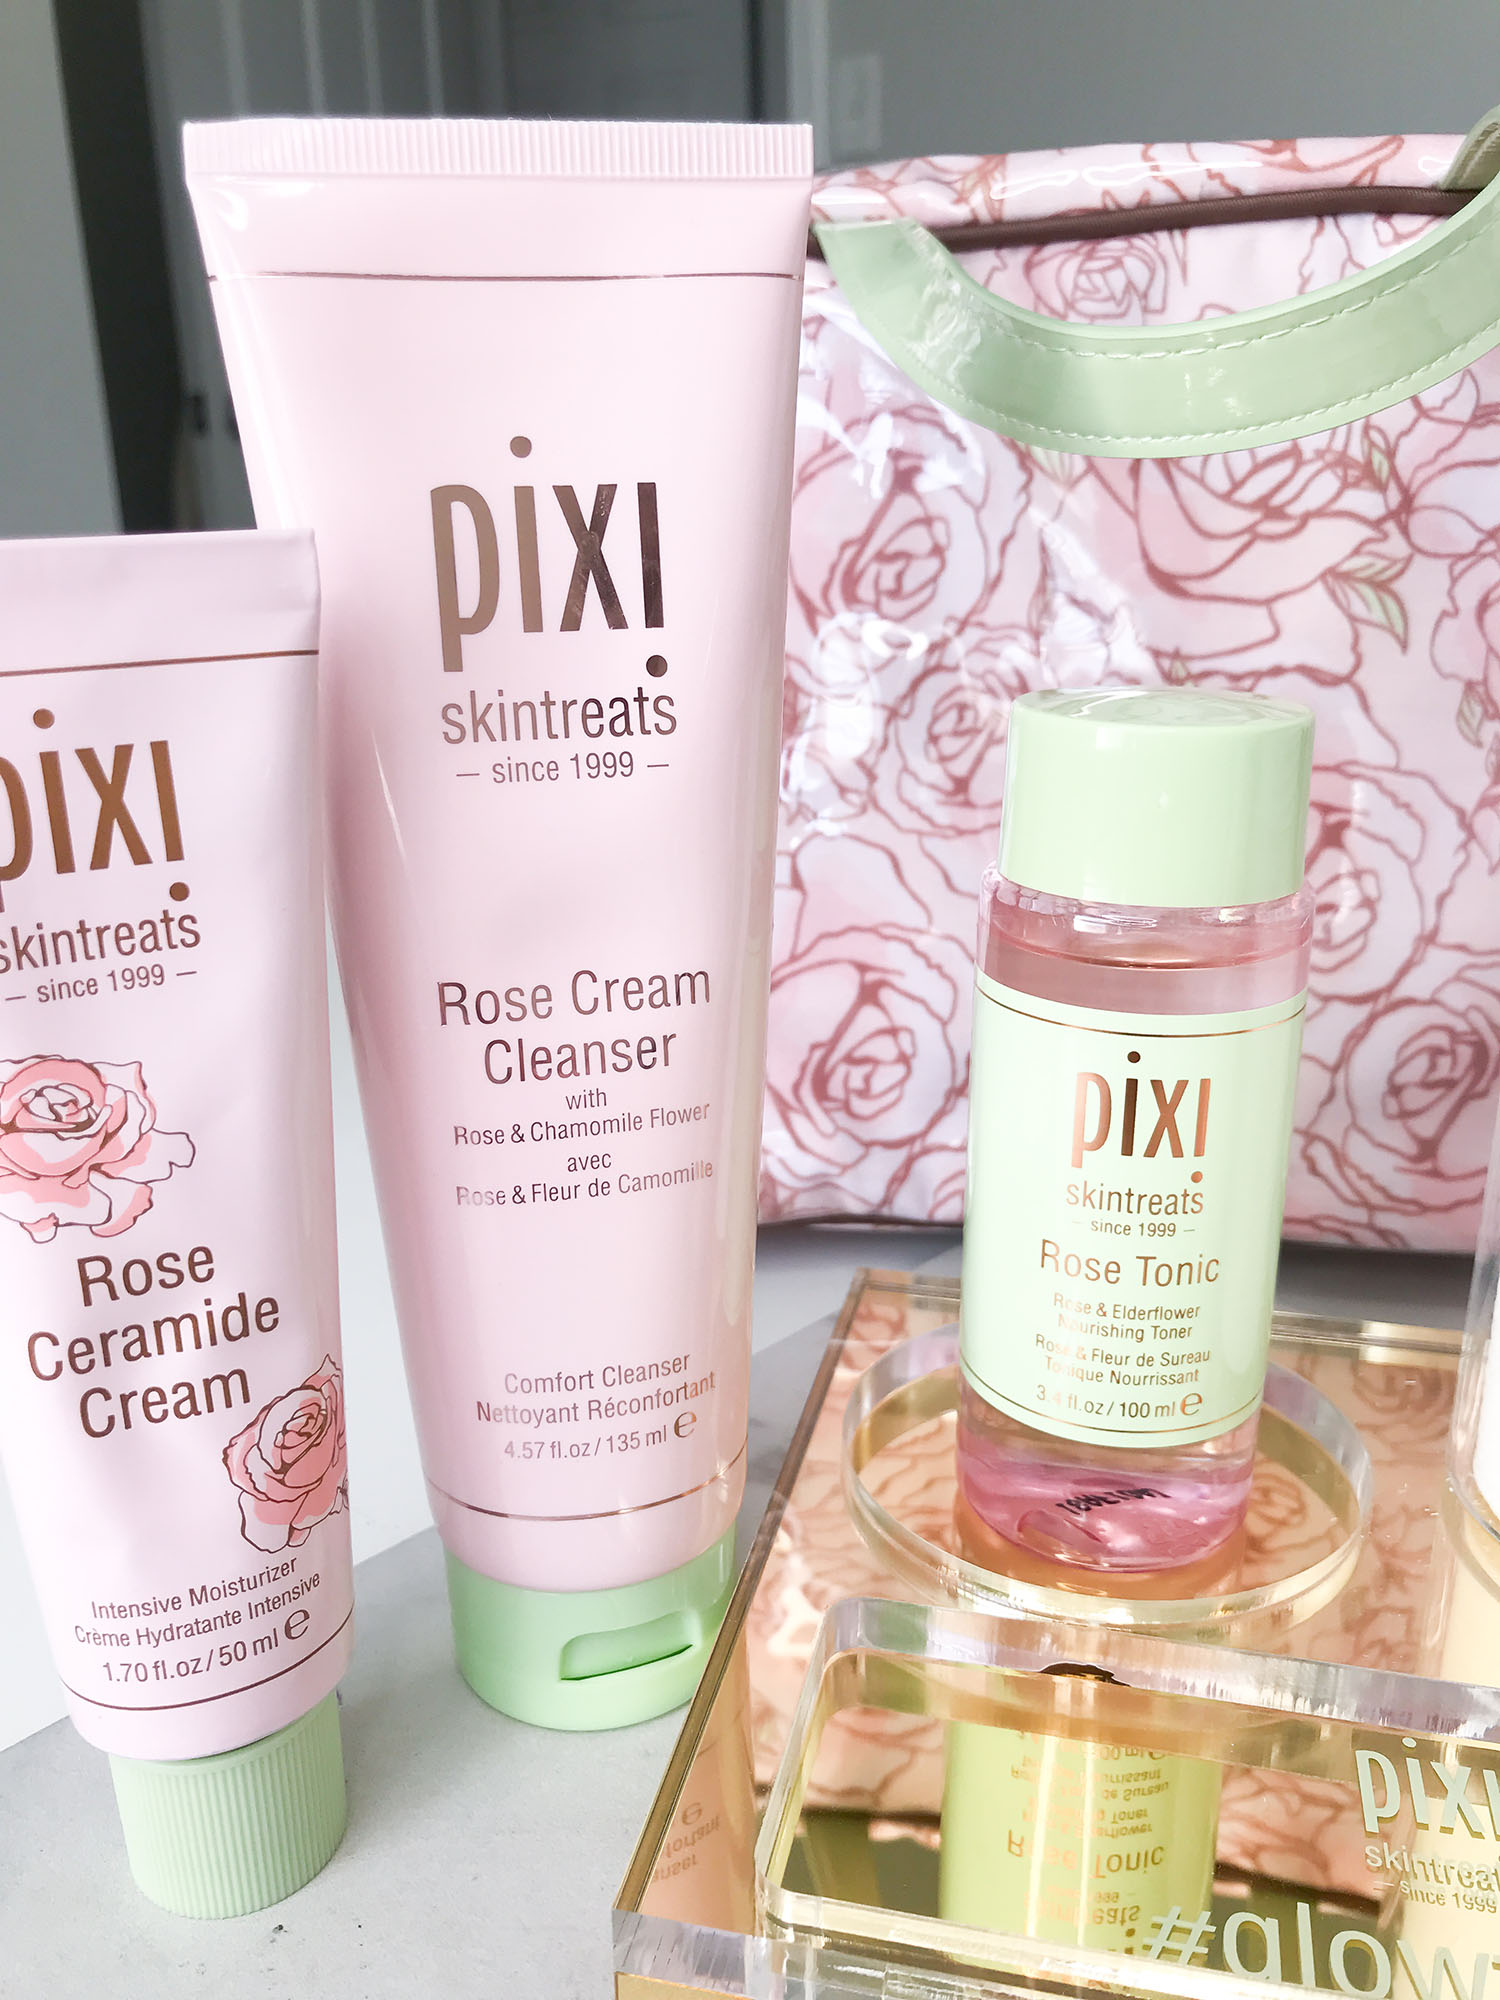 pixi skintreats rose cream cleanser and rose ceramide cream and rose tonic